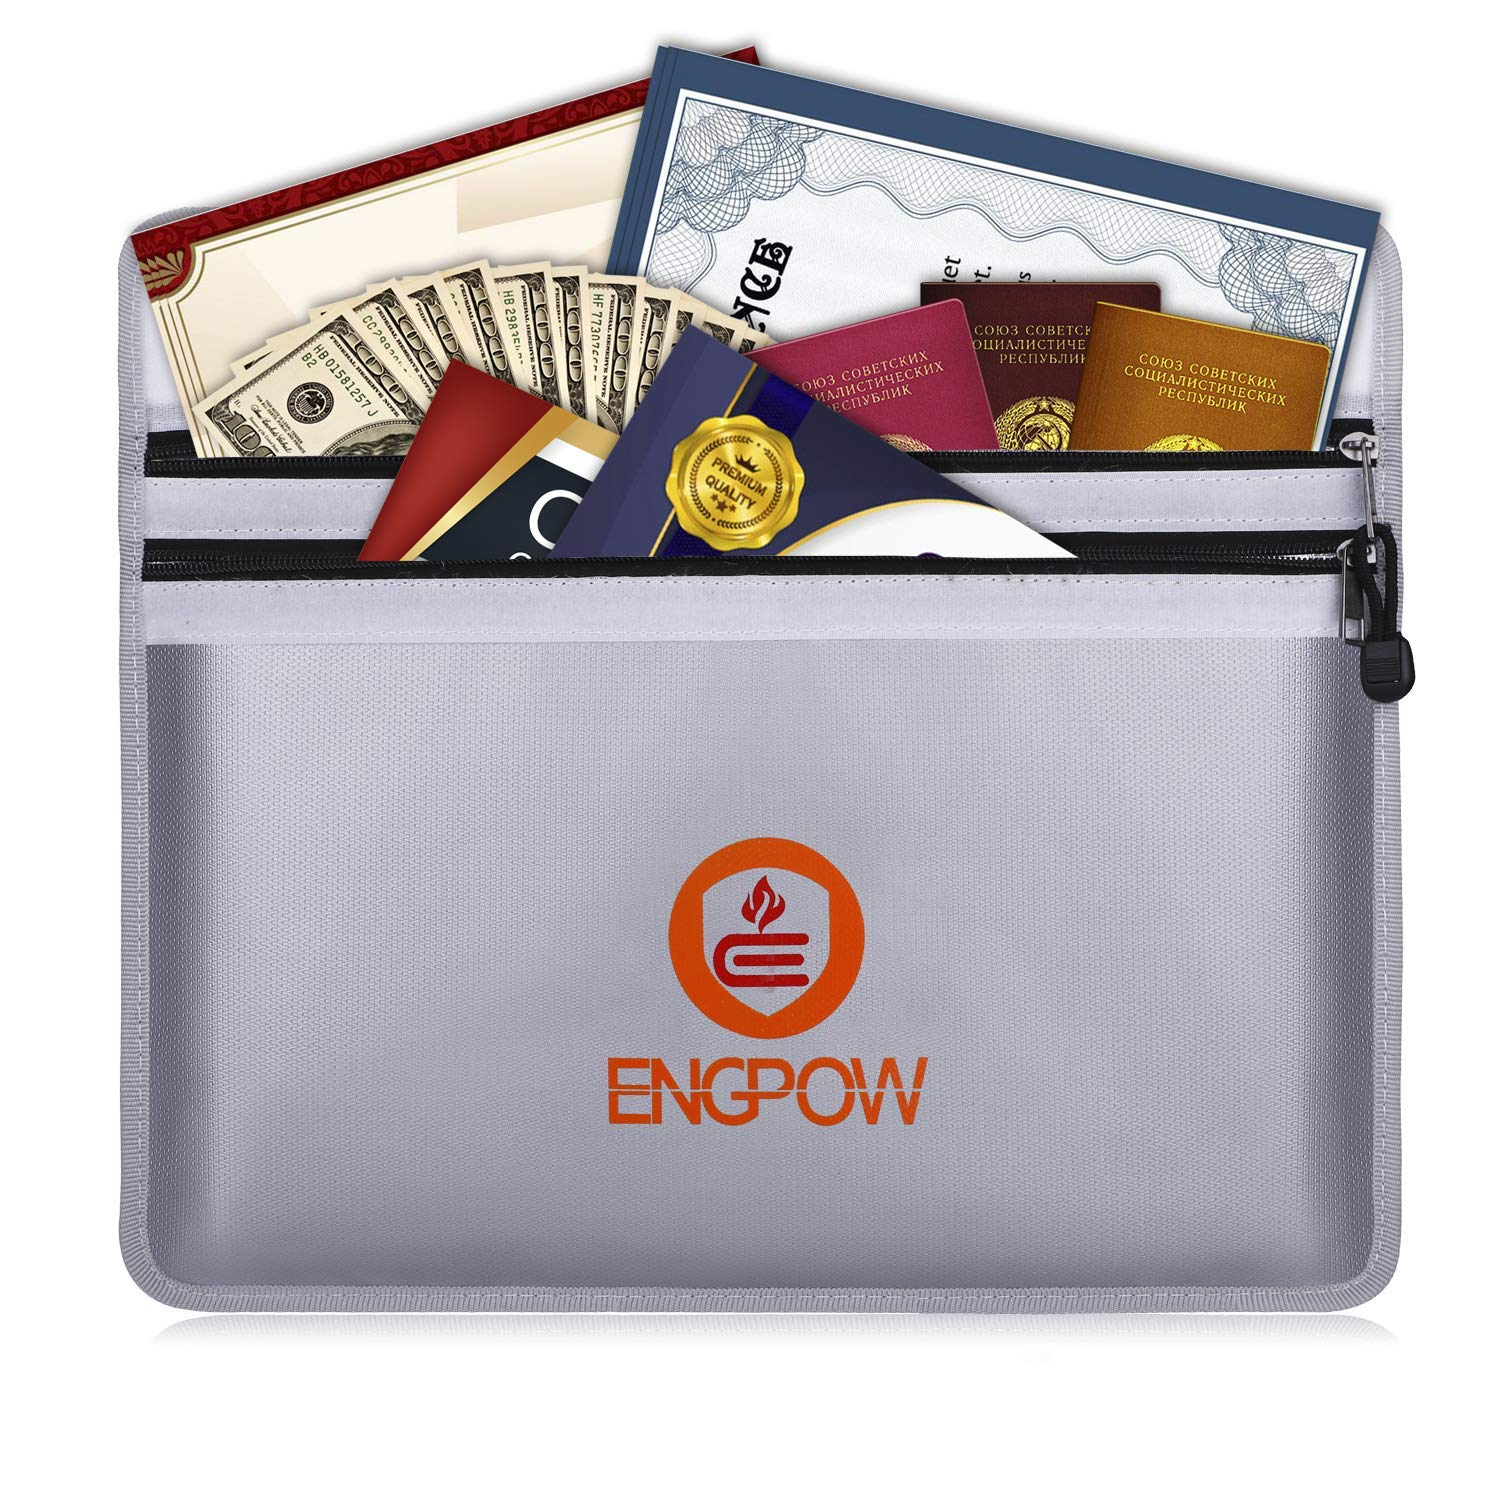 ENGPOW Fireproof Document Bags 15'' x 11'' Two Pockets Two Zippers Fire and Water Resistant Money Bag Fireproof Safe Storage Pouch Envelope for Ipad, Cash, Documents, Jewelry and Passport